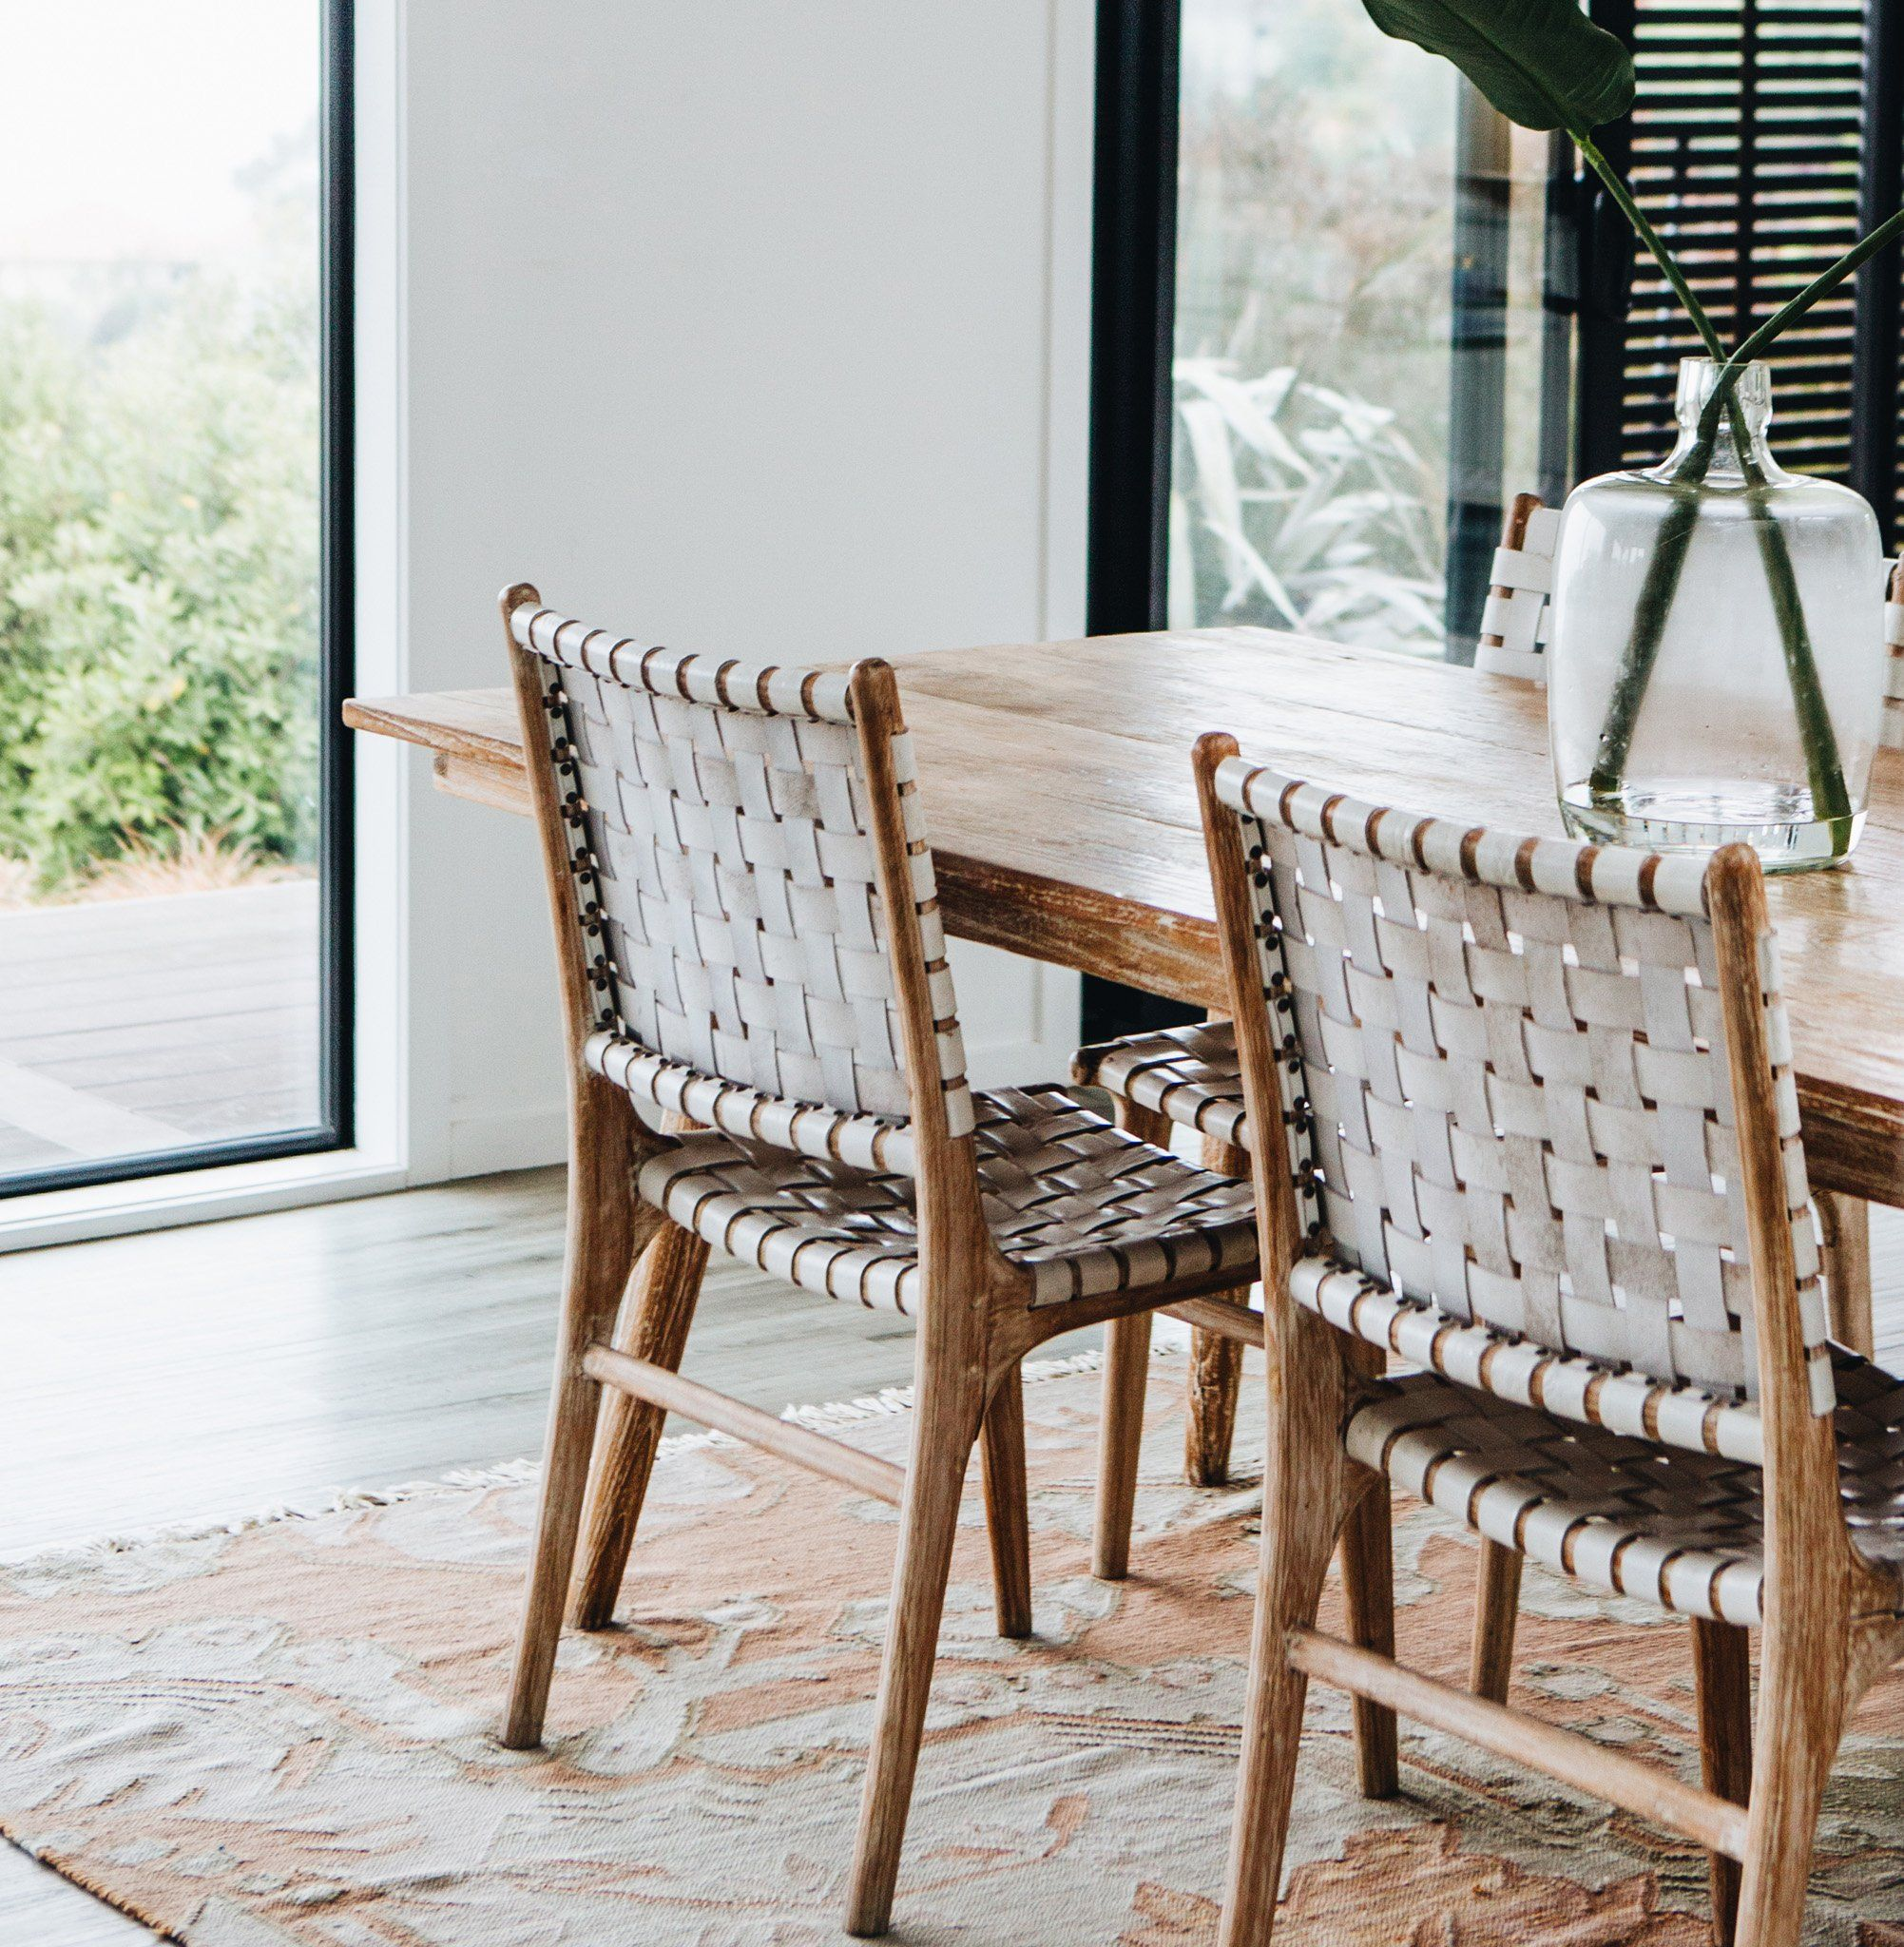 White Leather Chairs Dining Folding Chair Officeworks Weave Myfantasyland Pinterest